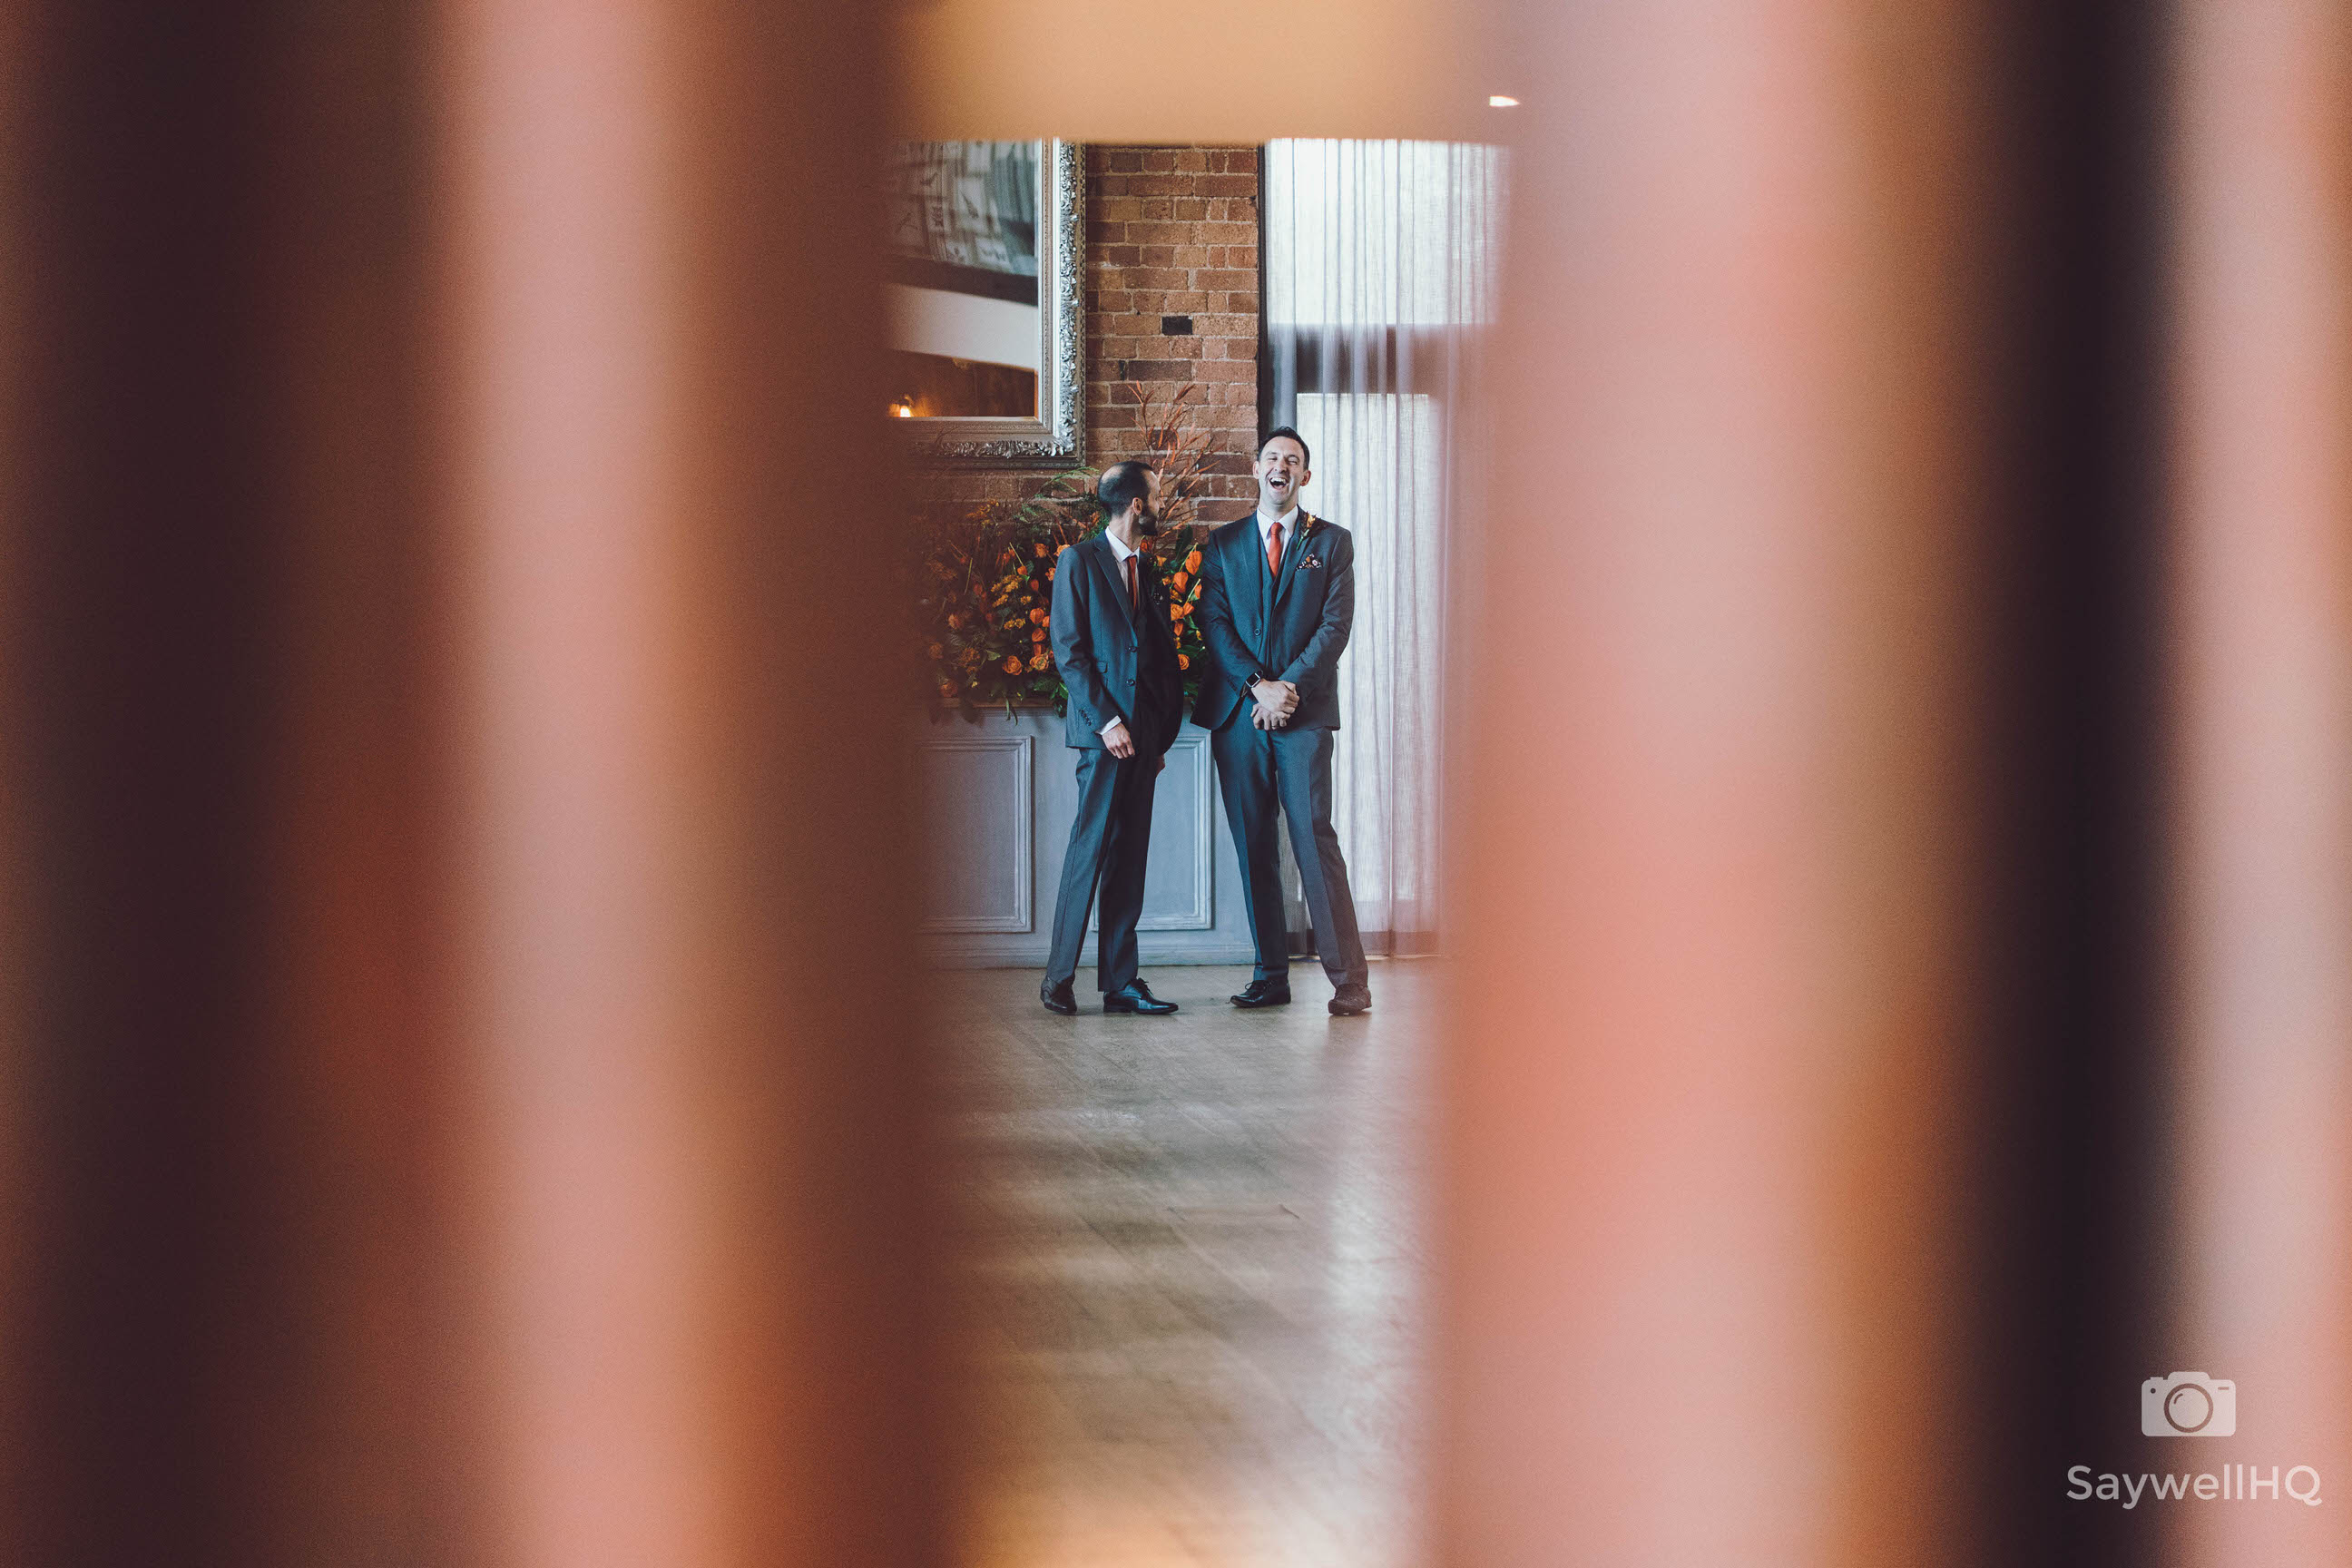 Wedding photography at Carriage Hall in Nottingham + best mand and groom laugh during the wedding ceremony